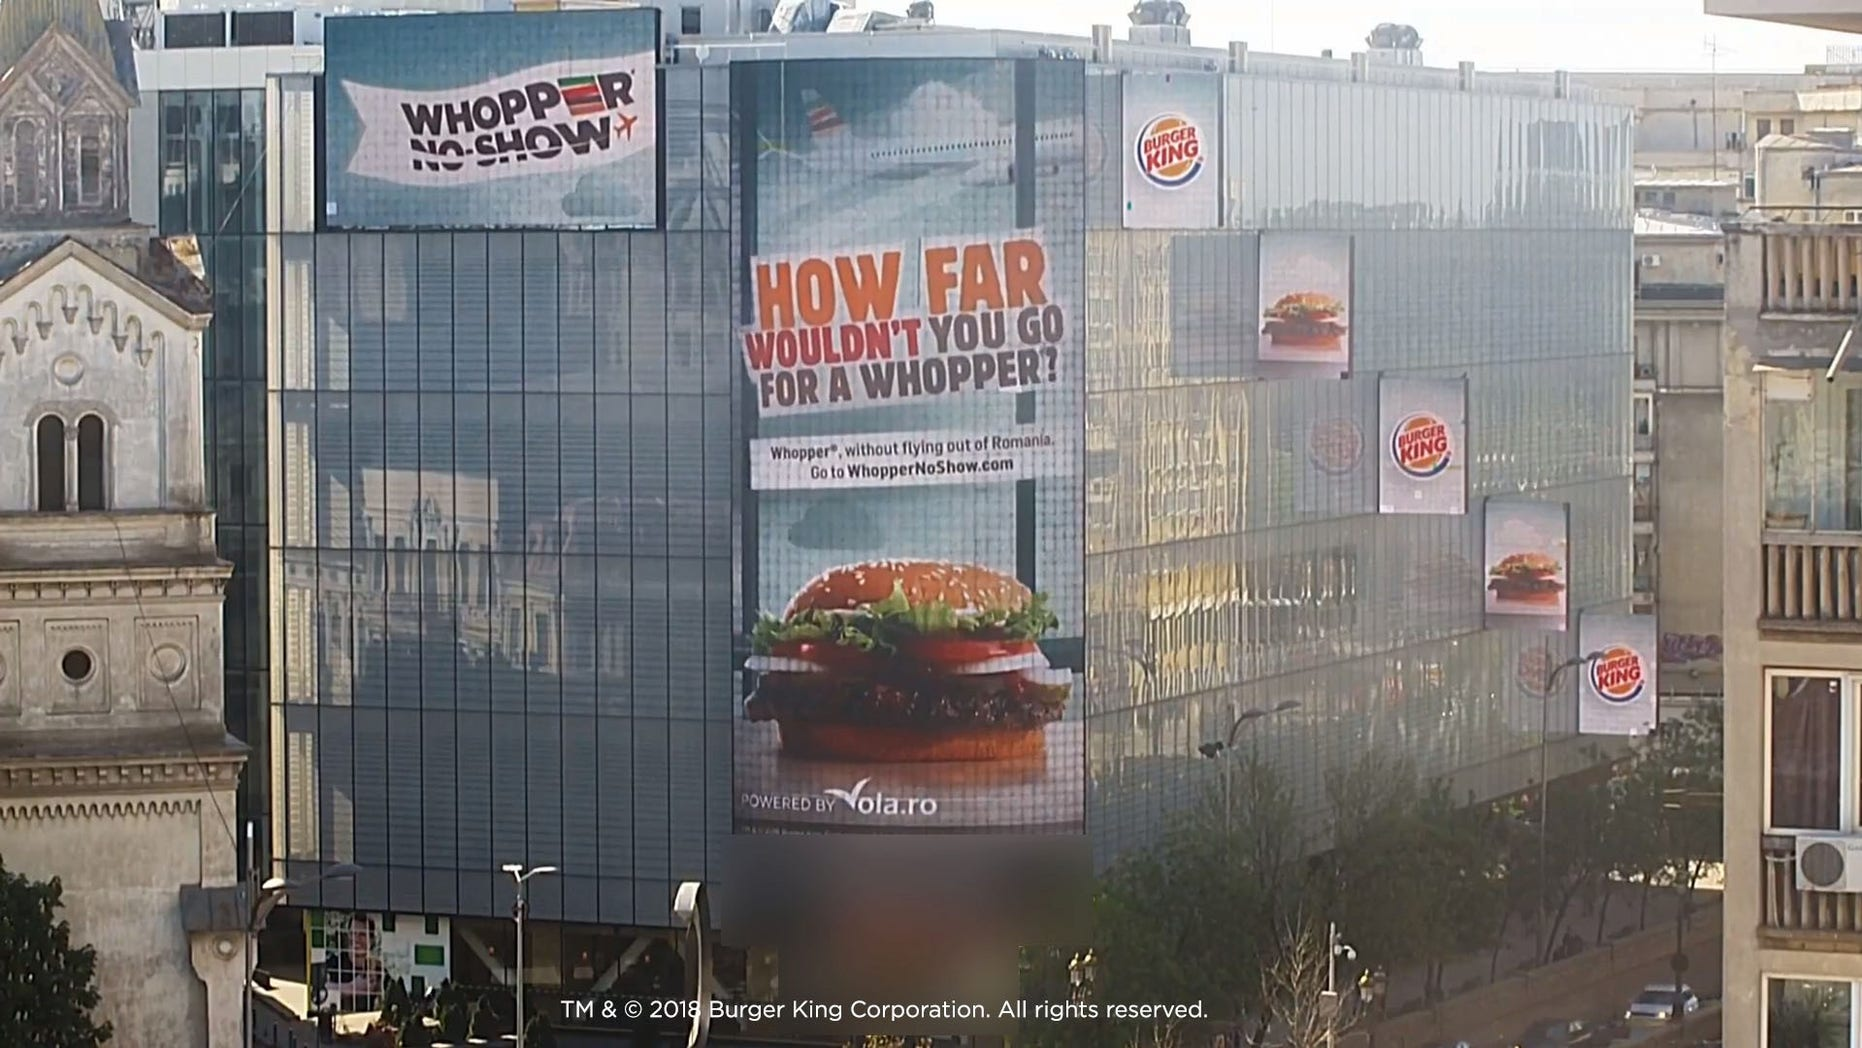 Burger King enthusiasts are going to great lengths to get their hands on a free Whopper.